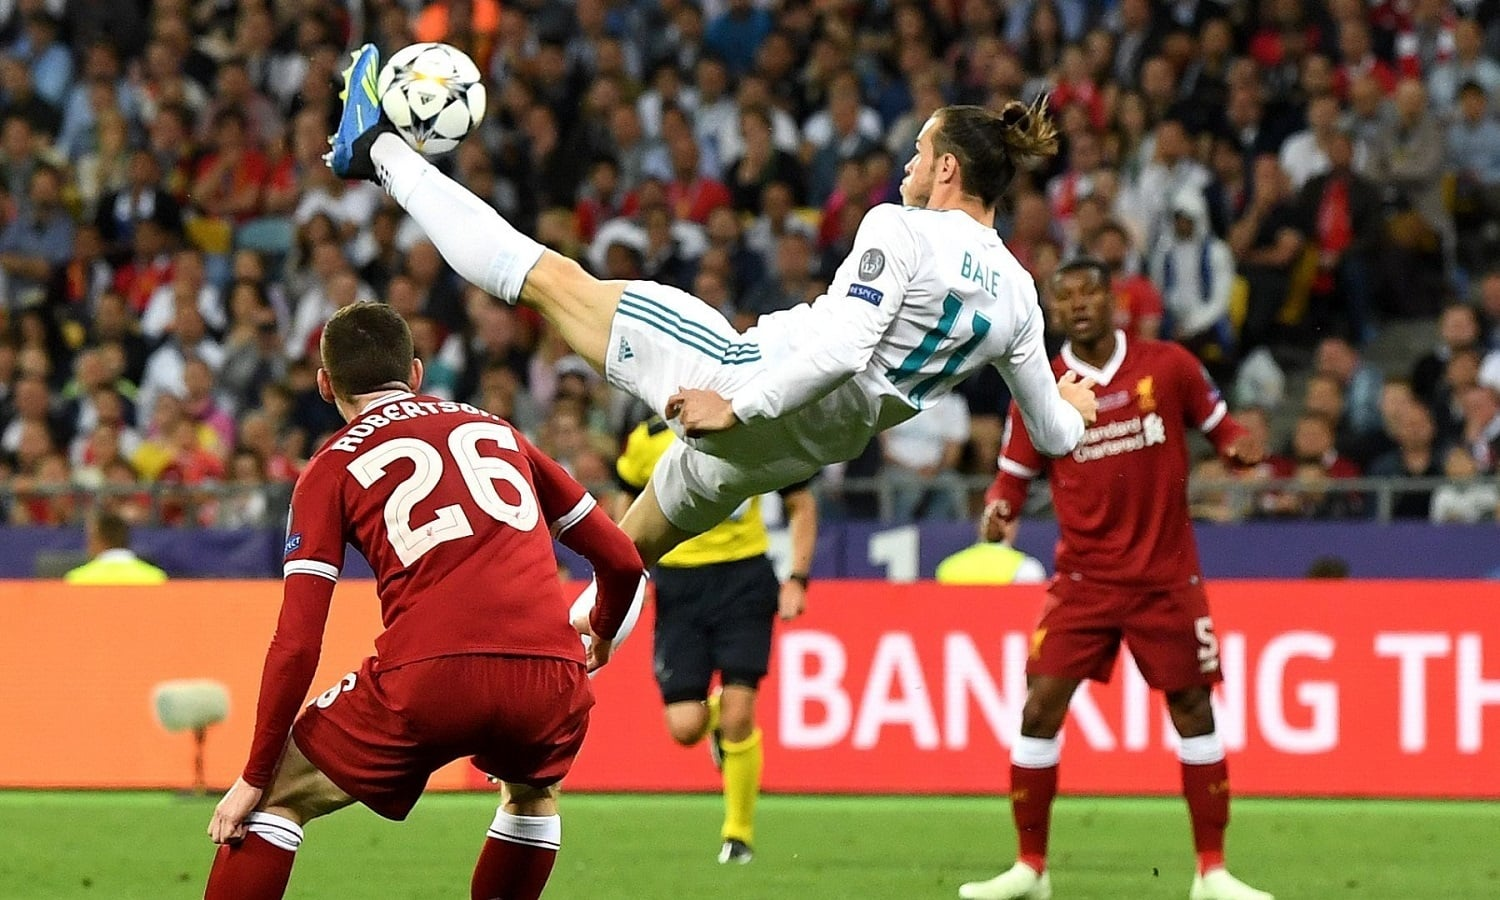 Welsh winger Gareth Bales in action during the 2017-18 Champions League final. — AFP